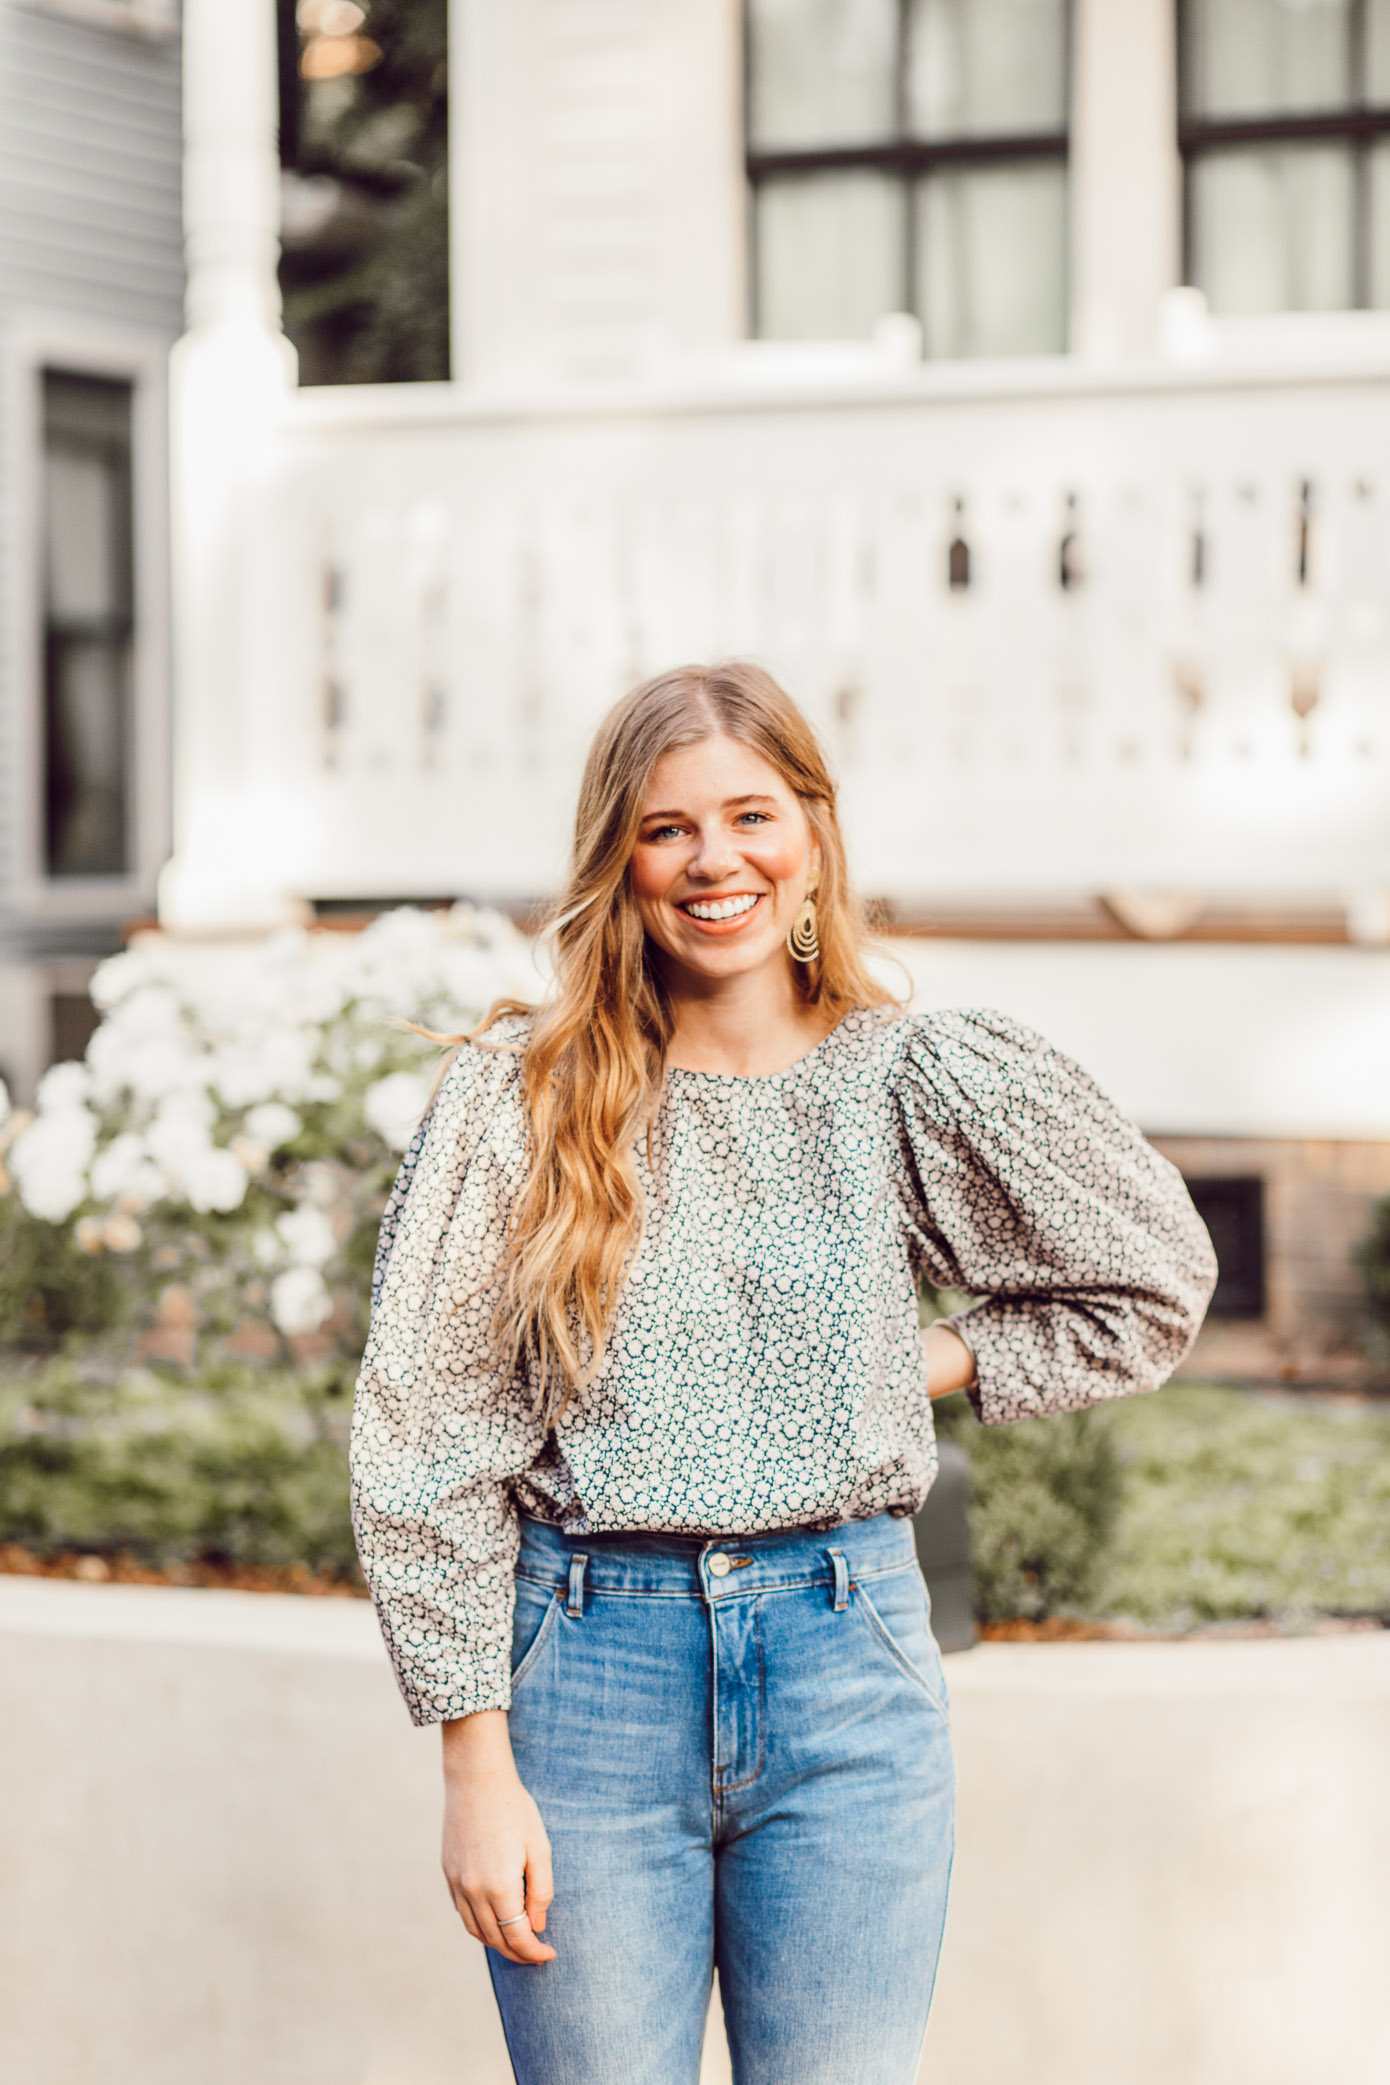 Fall Statement Sleeve Tops - Rebecca Taylor Lauren Poplin Top styled by popular Charlotte style blogger, Laura Leigh of Louella Reese